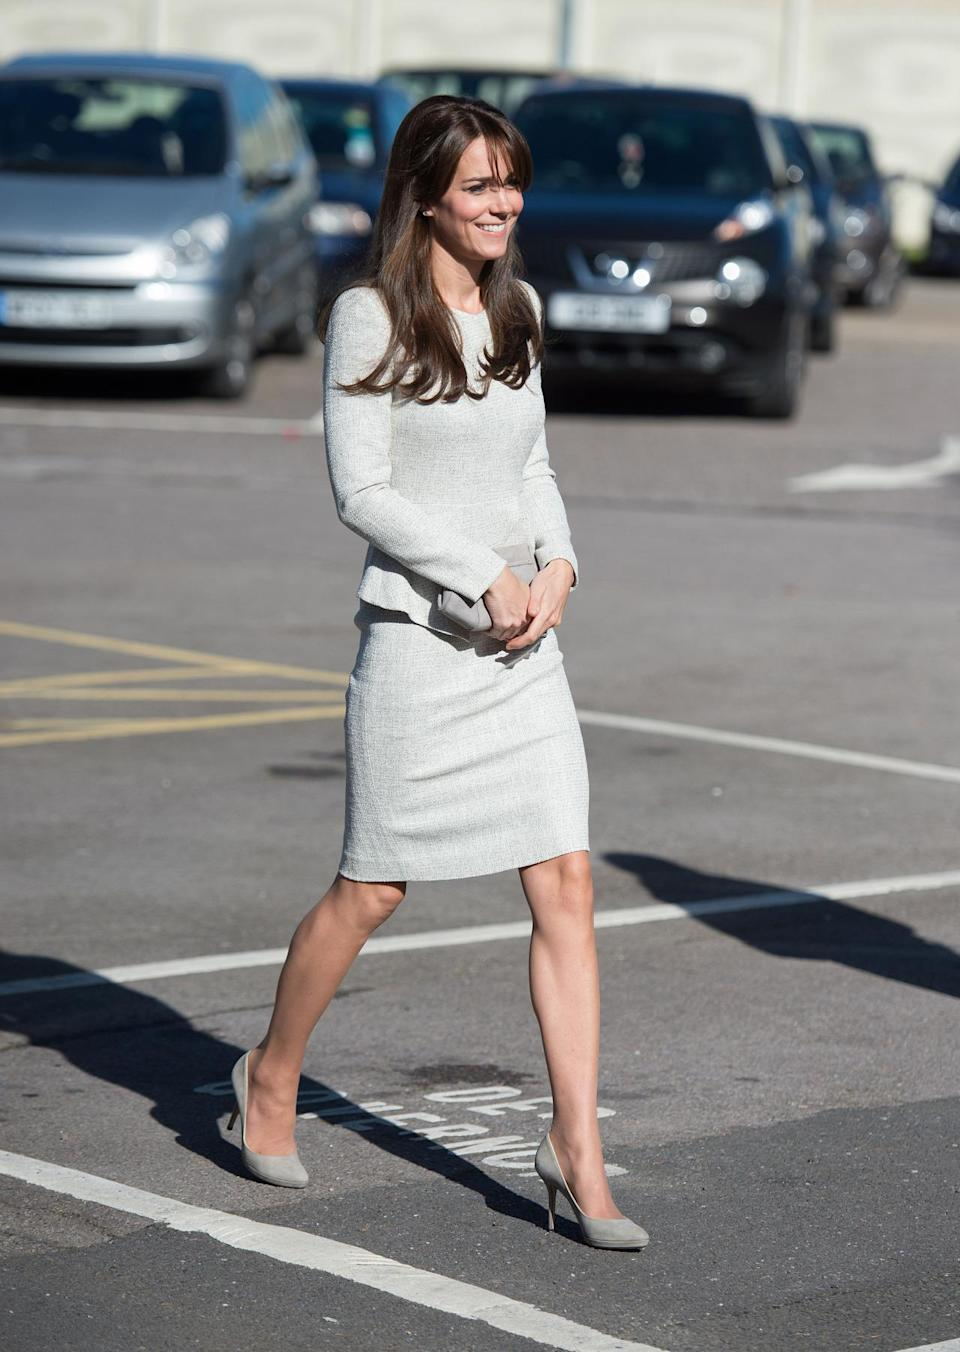 <p>On a visit to a women's prison, Kate wore a white tweed dress by Fold London and grey Jimmy Choo heels. She also carried a neutral-toned bag by Hobbs. </p><p><i>[Photo: PA]</i></p>